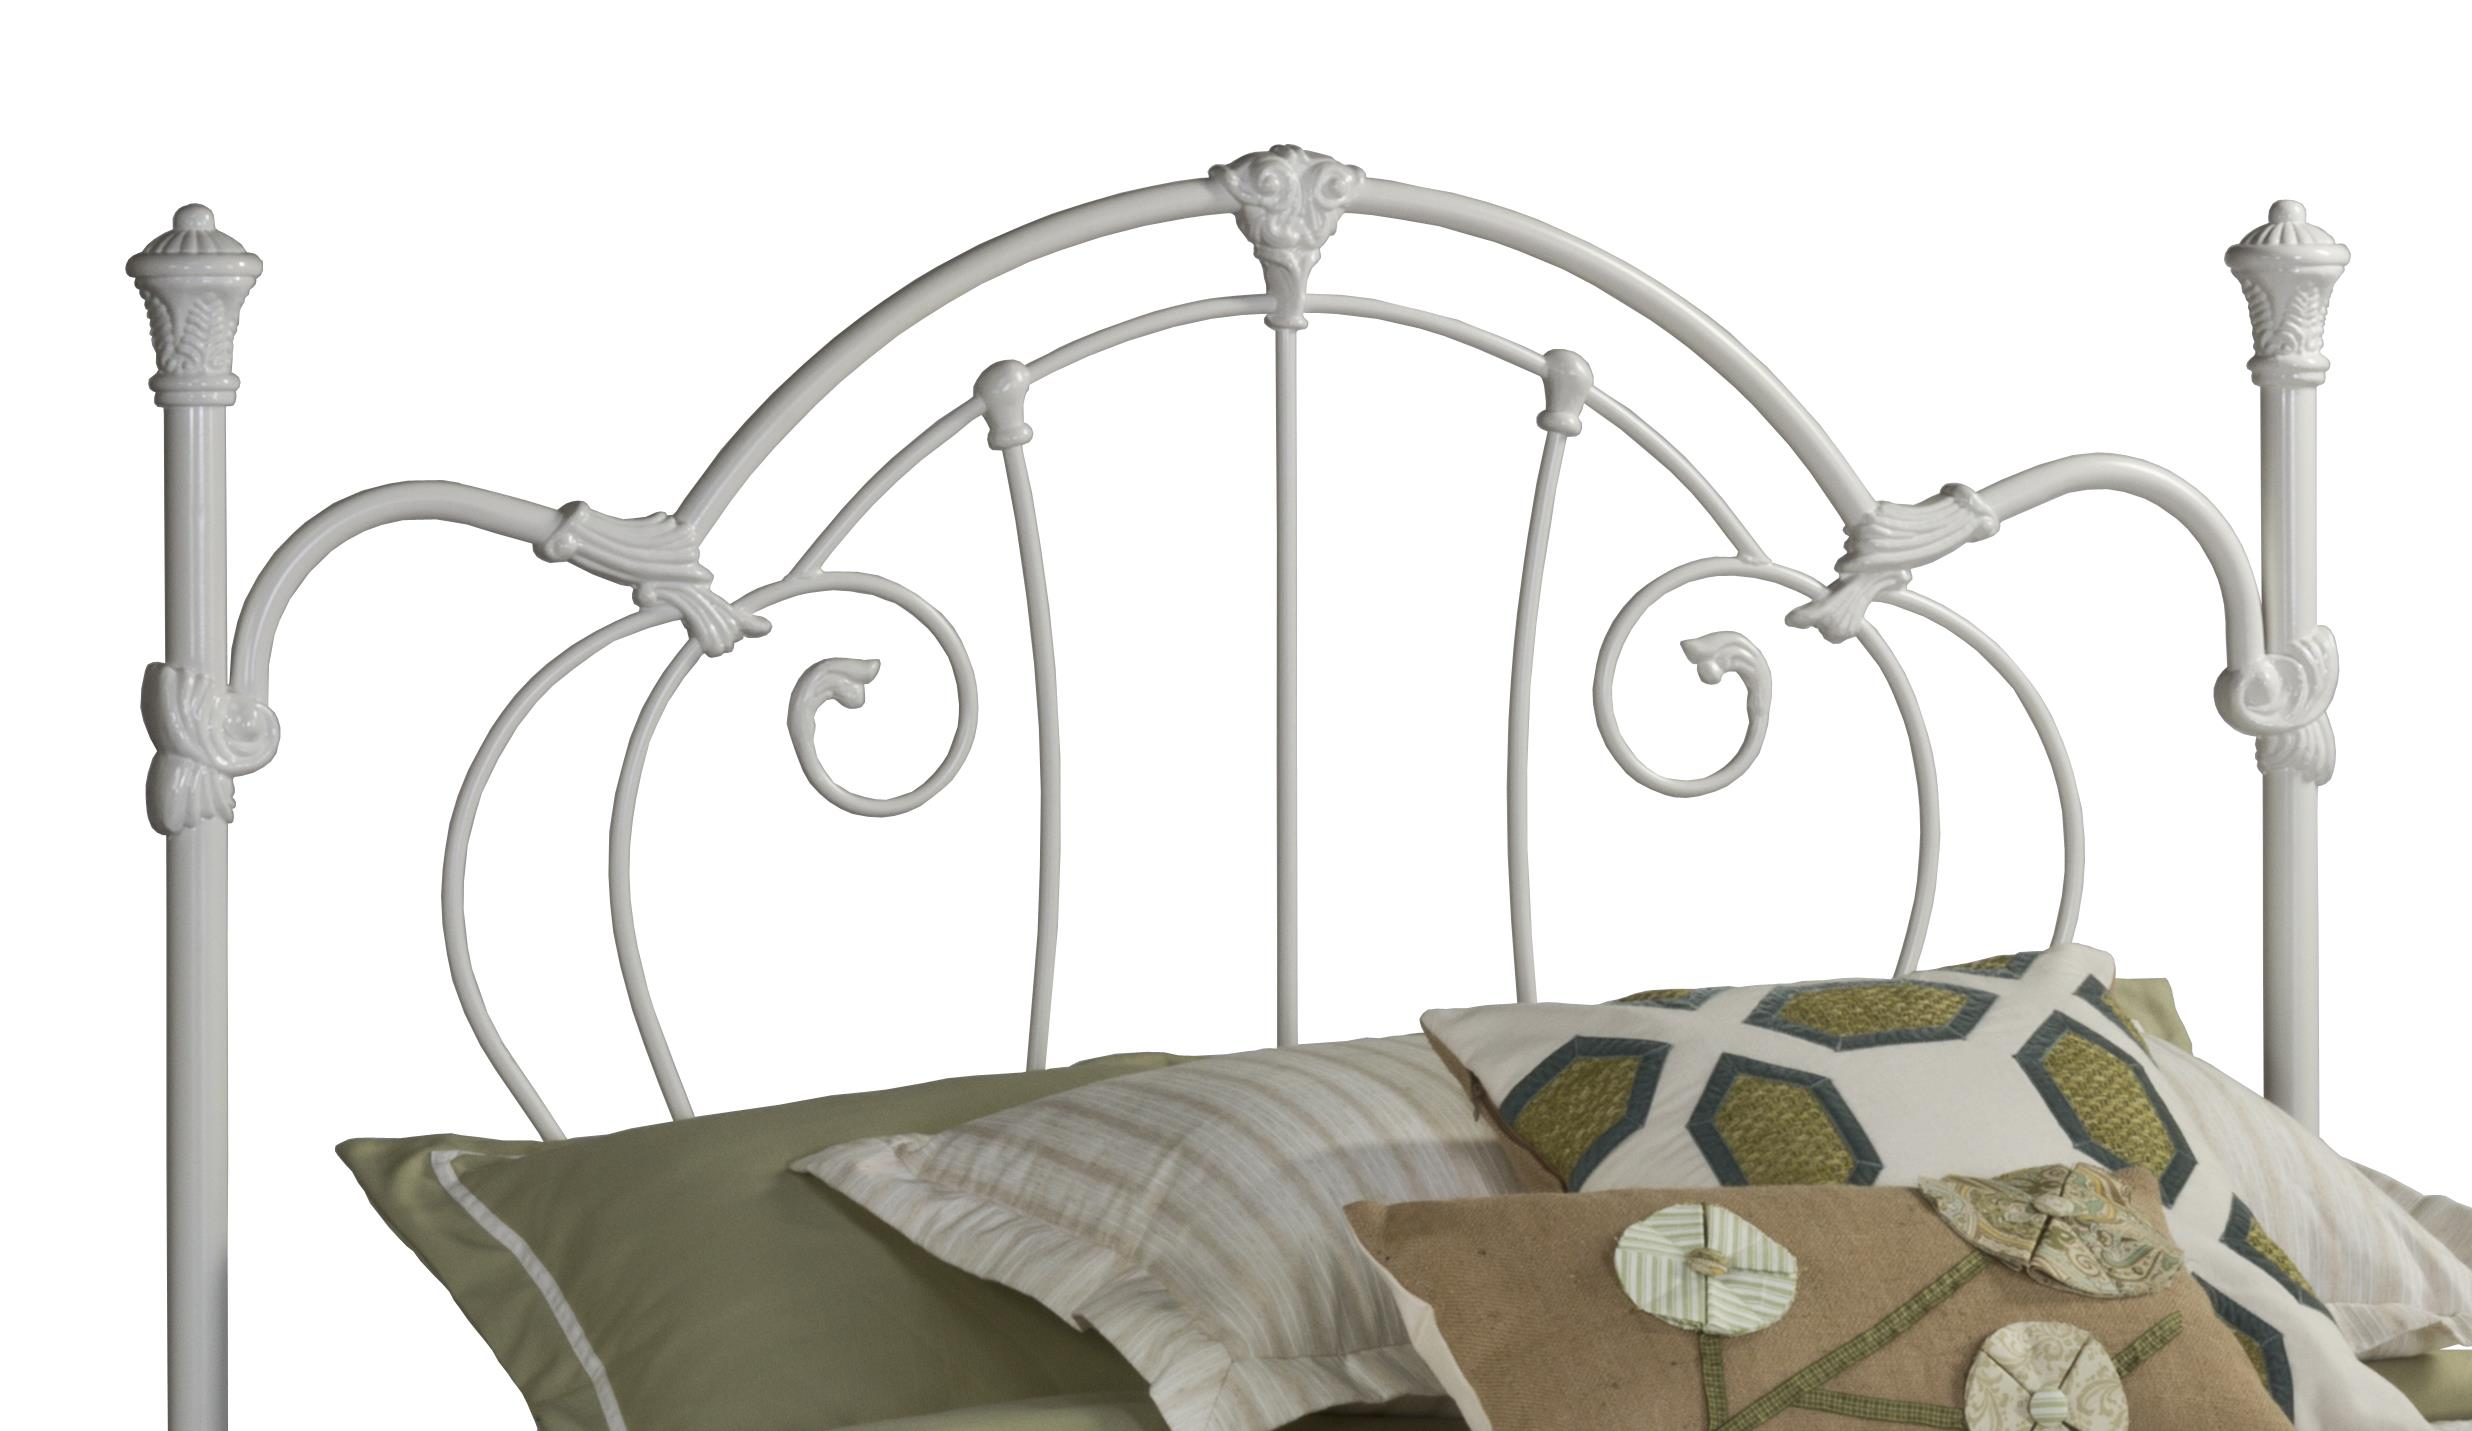 Hillsdale Metal Beds Headboard and Rails - King - Item Number: 381HKR